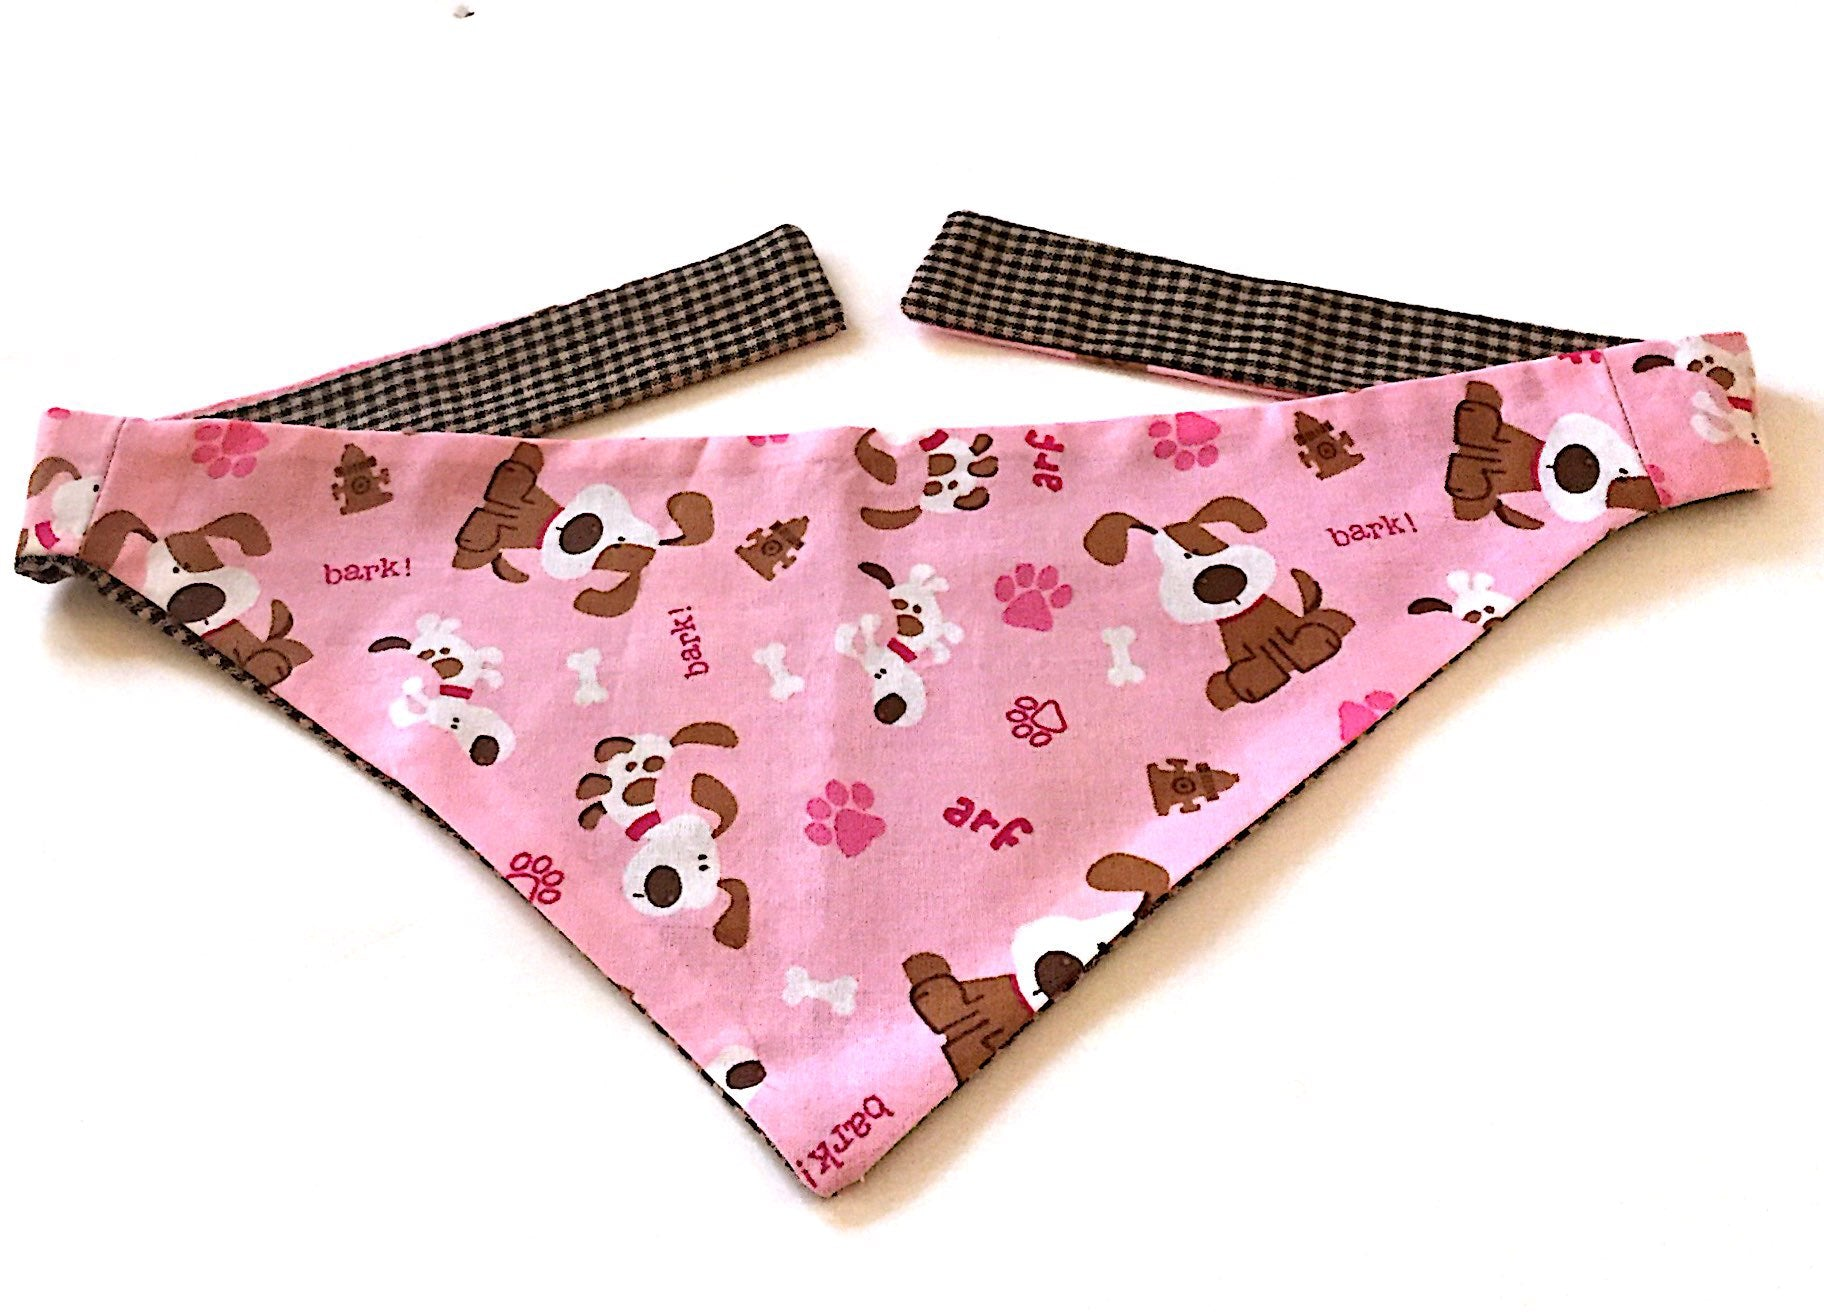 Pink Bandana with Brown spotted dog